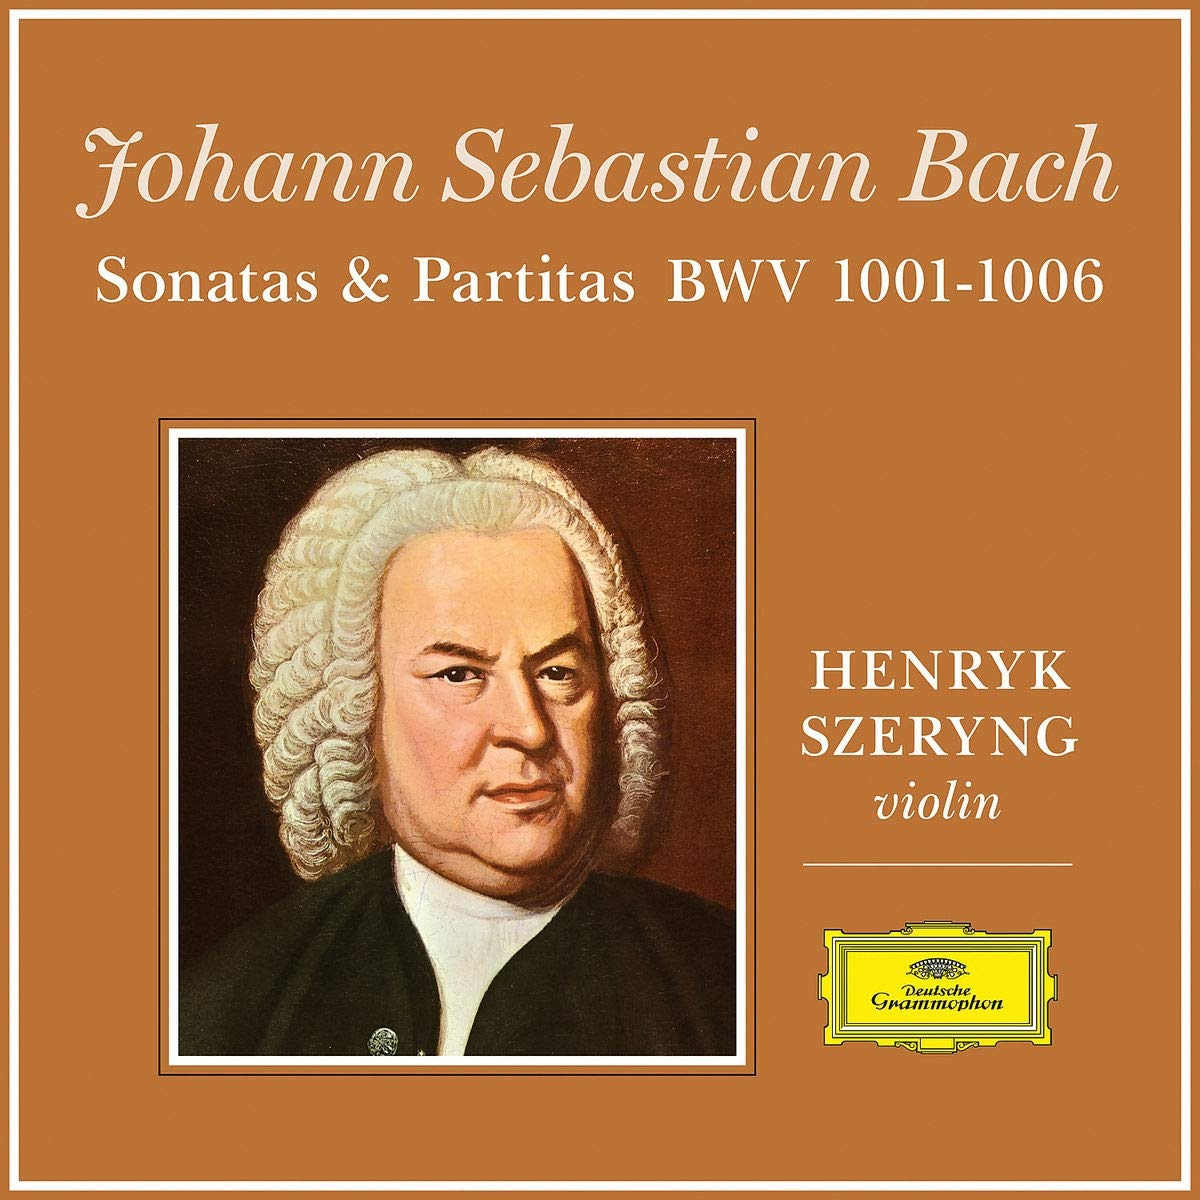 Vinilo : HENRYK SZERYNG - J.s.bach: 6 Sonatas & Partitas For Violin Solo (180 Gram Vinyl, Limited Edition, 3PC)